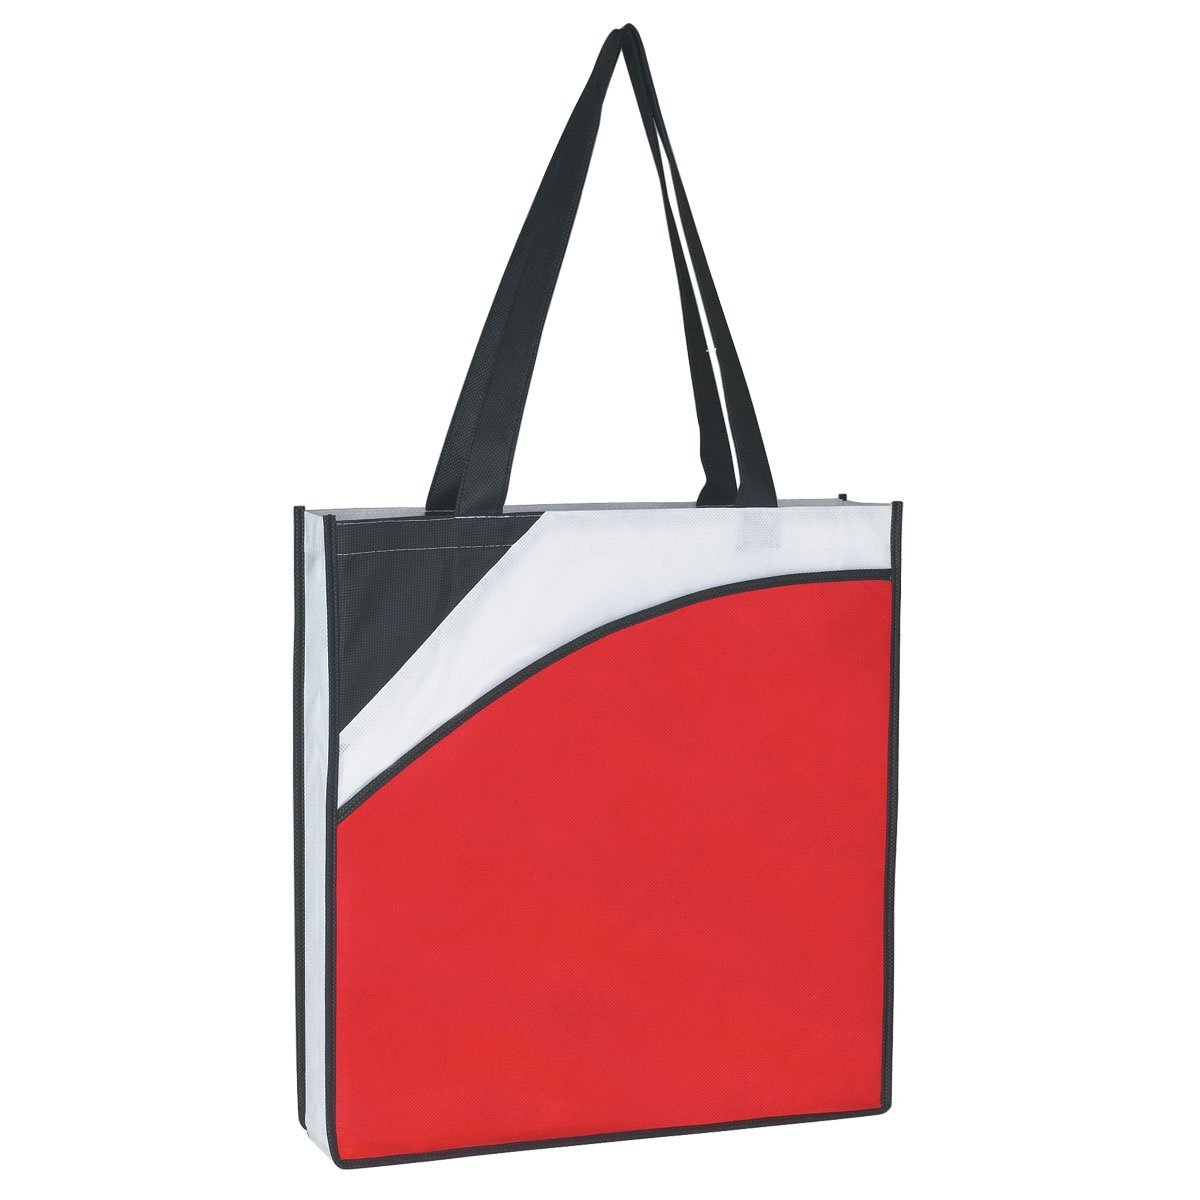 Mystic Non-Woven Conference Tote - Free Set Up Charges!